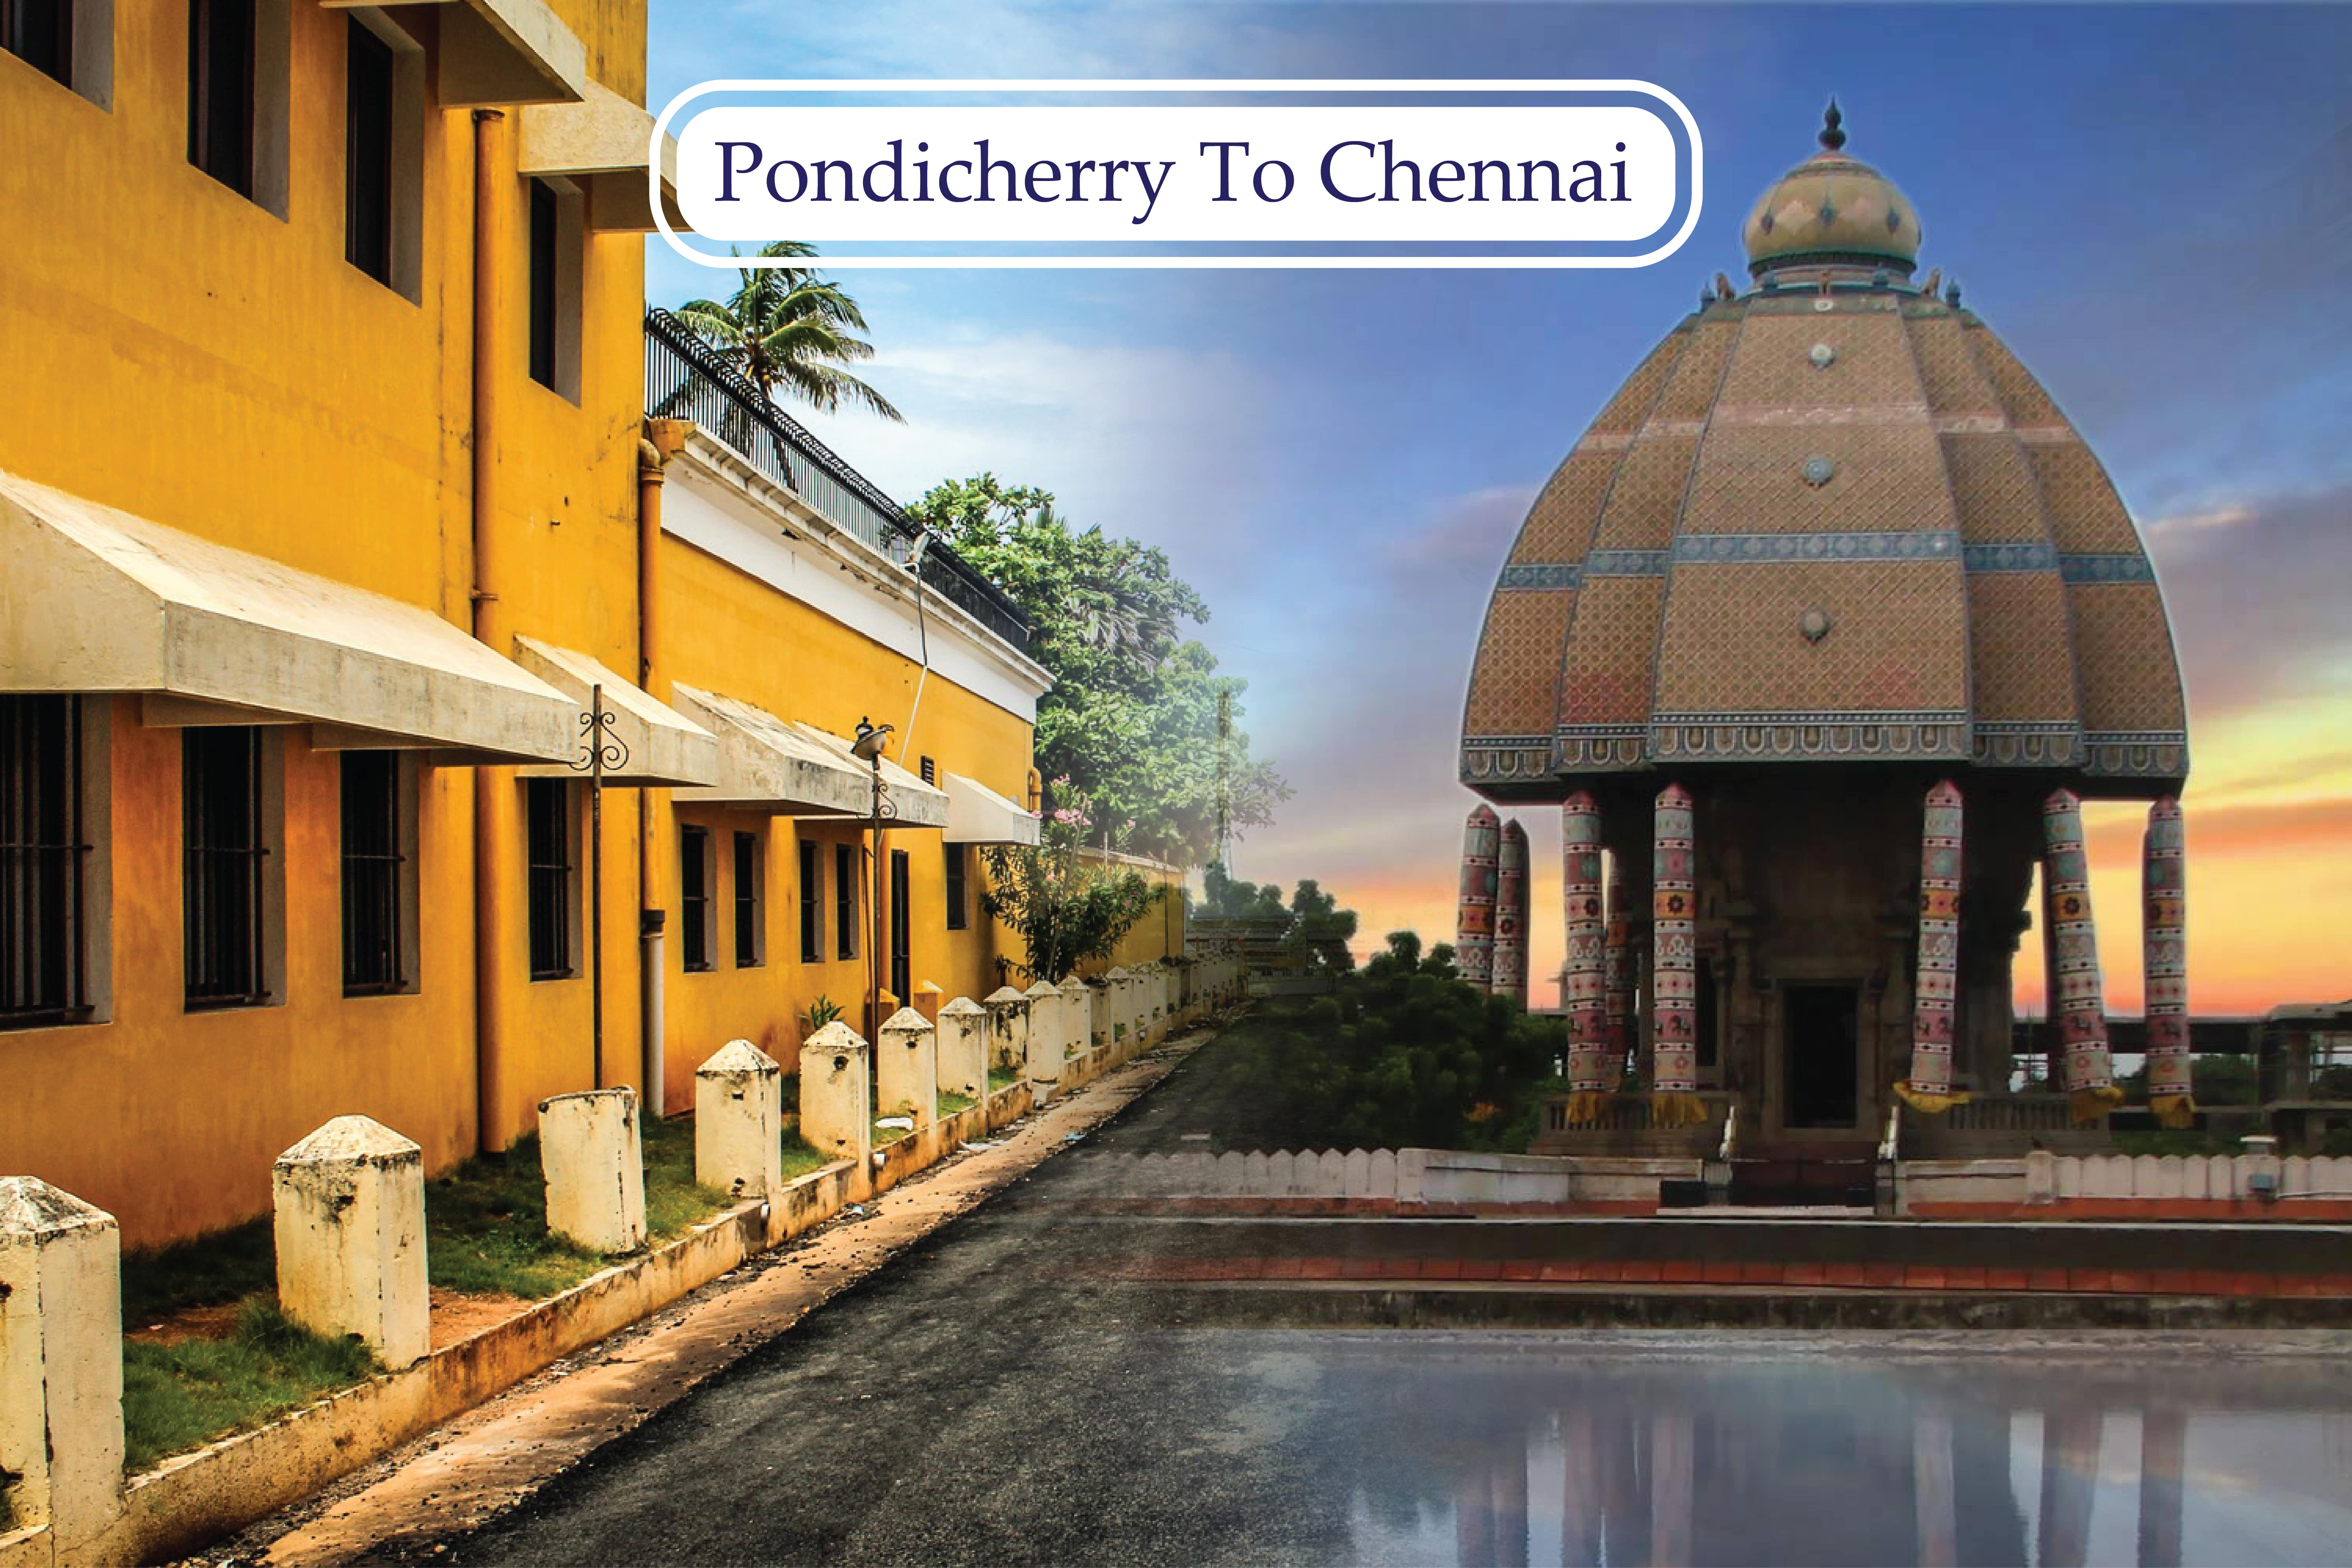 pondicherry to chennai cab